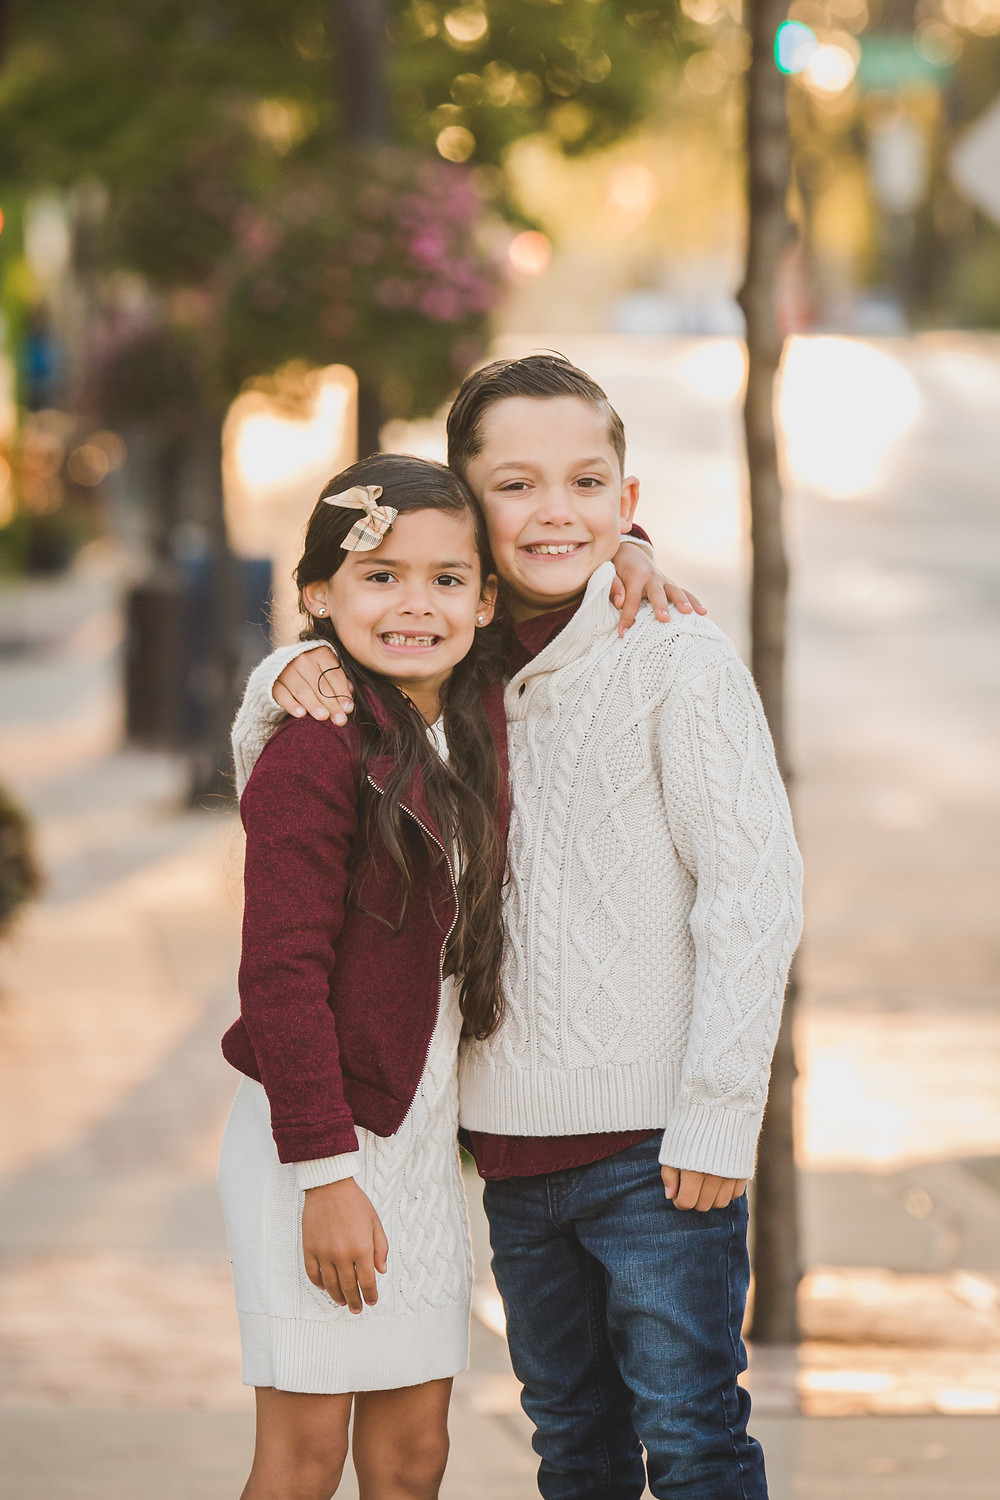 siblings photography, downtown Batavia, Kane County Photographer, South Elgin IL photographer, Batavia IL photography,